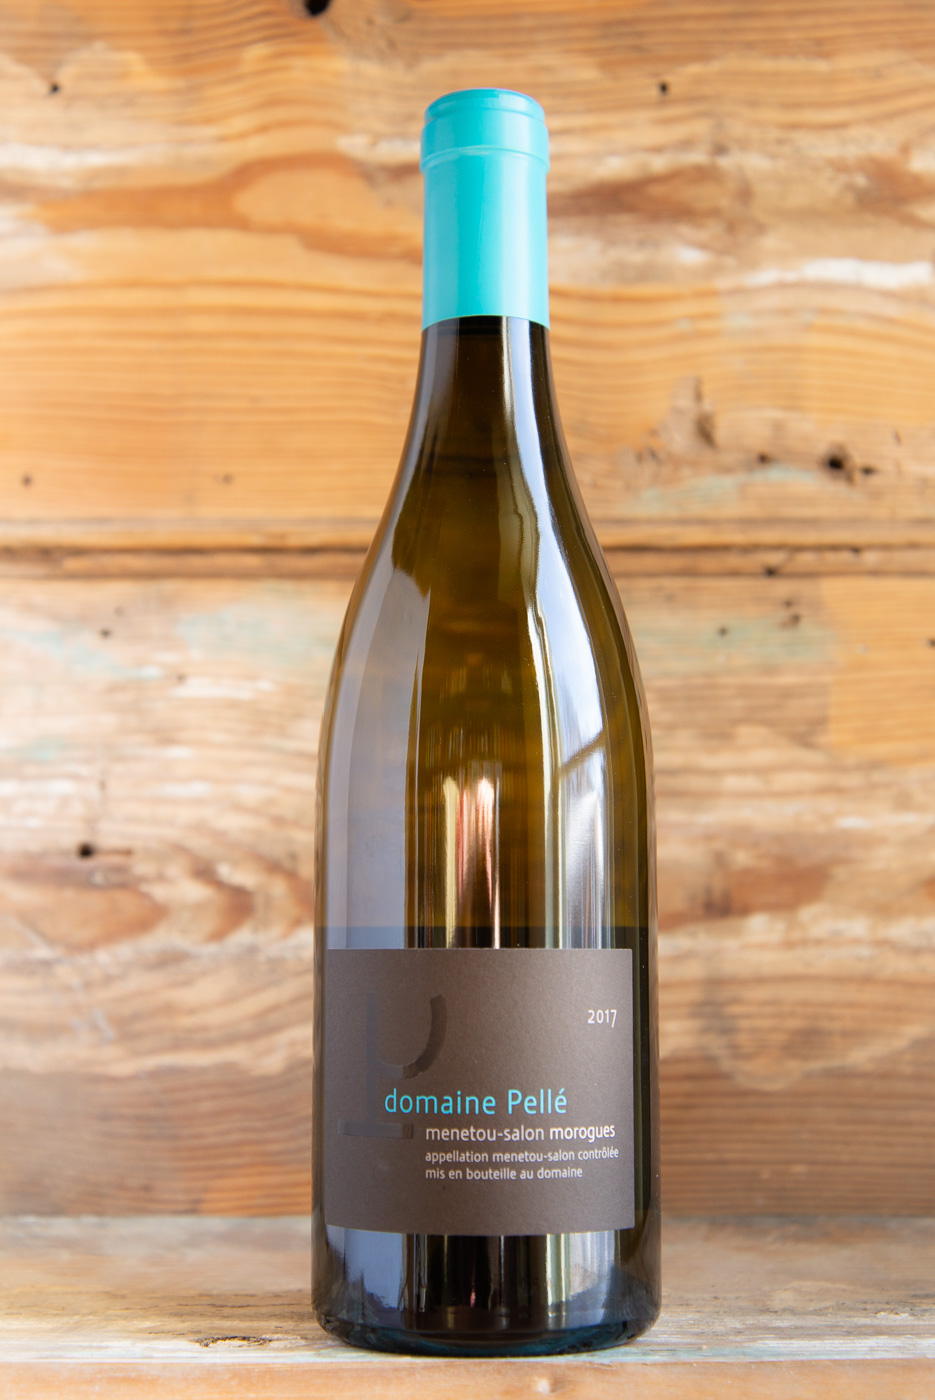 Pelle Menetou-Salon Morogues Blanc 2017 - Origin: FranceRetail: $25.95 | Sale $23.35Domaine Pellé is a fourth generation estate run by the talented and hard-working Paul-Henry Pellé. The winery was officially started in the 1950s, though earlier generations of the Pellé family had produced wine even before then, selling barrels to local Brasseries as far as Brouges in the early 20th century. Coming from the far eastern end of the Loire Valley, this distint mineral-laden Sauvignon Blanc from the under-the-radar-appellation Menetou-Salon is a wonderful alternative to a great Sancerre. The nose is pure with aromas of white flowers and citrus fruits. The palate is racy, followed by a saline/mineral finish that give this wine a beautiful clarity and precision.100% Sauvignon BlancOrganic